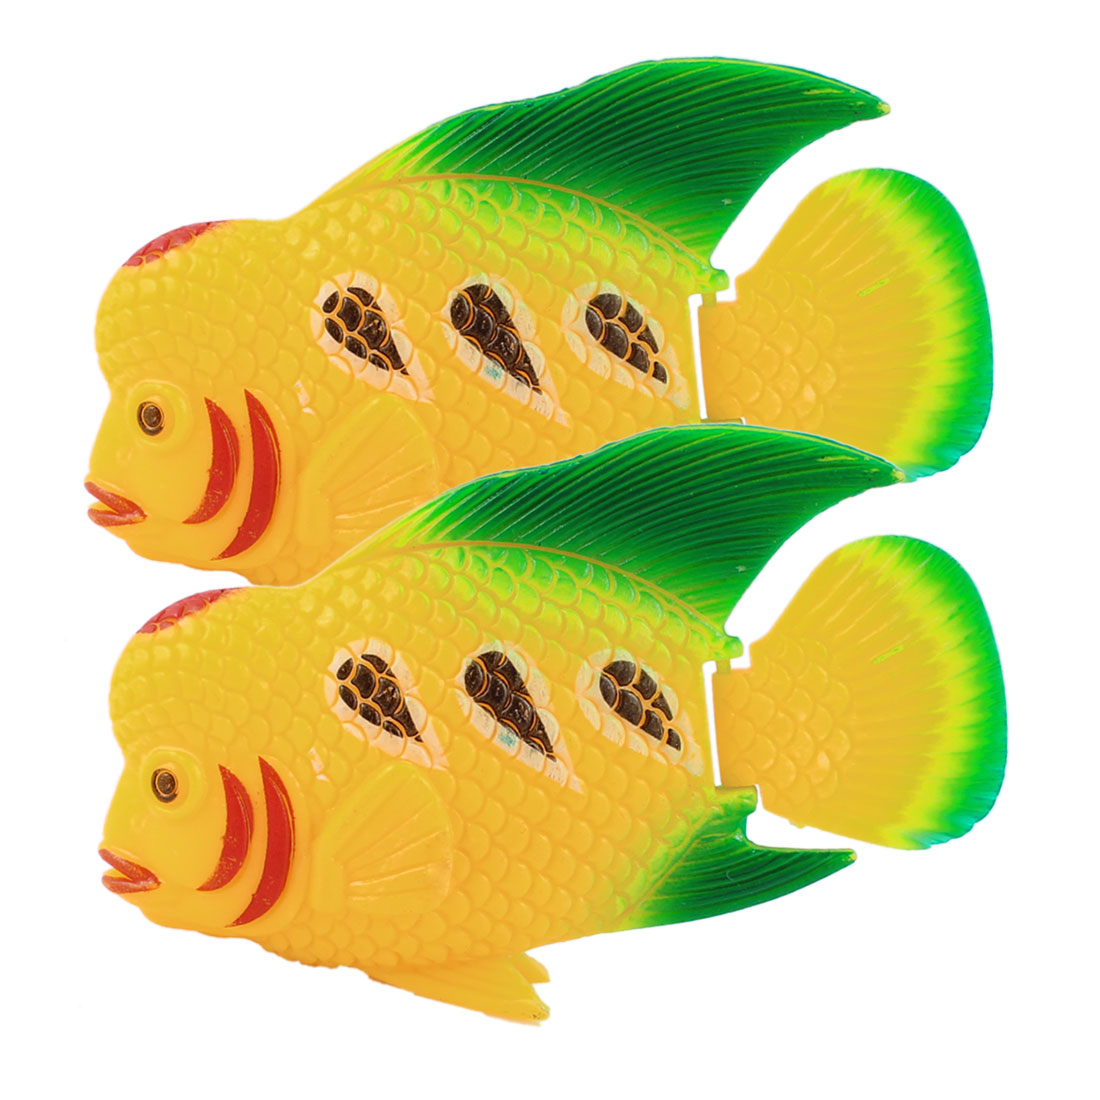 2 Pcs Green Plastic Swing Tail Tropical Fishes Ornament Decoration for Aquarium